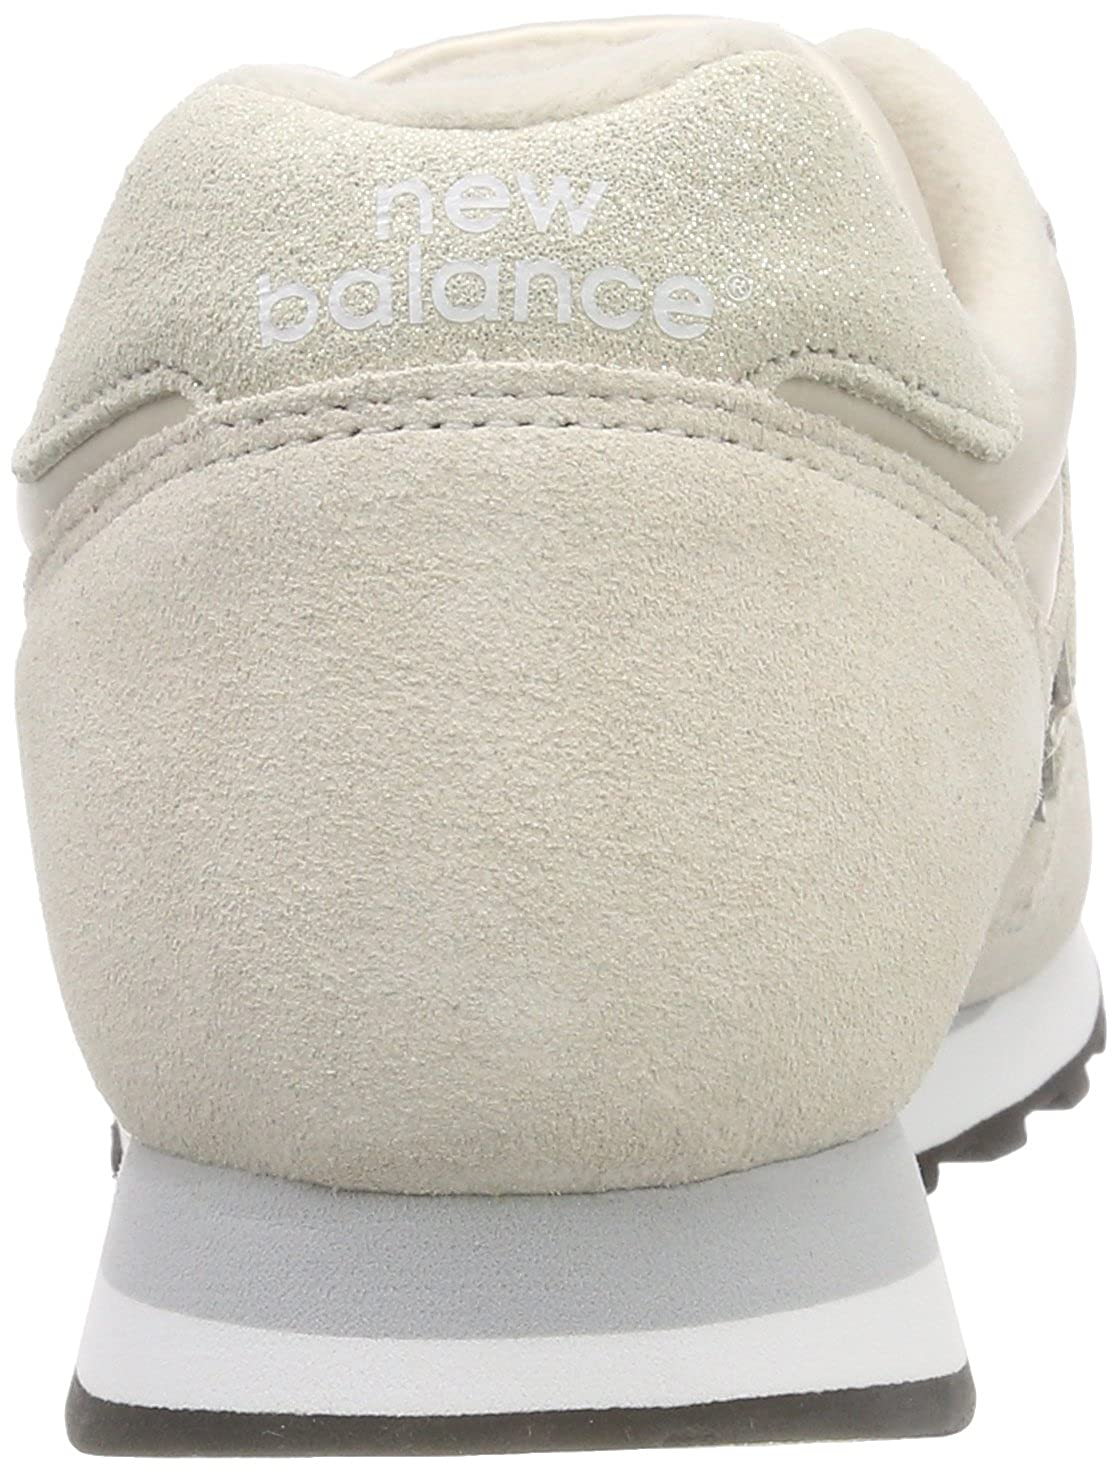 New Balance (Moonbeam/Grey Damen 373 Sneaker Grau (Moonbeam/Grey Balance Osp) 519c4c